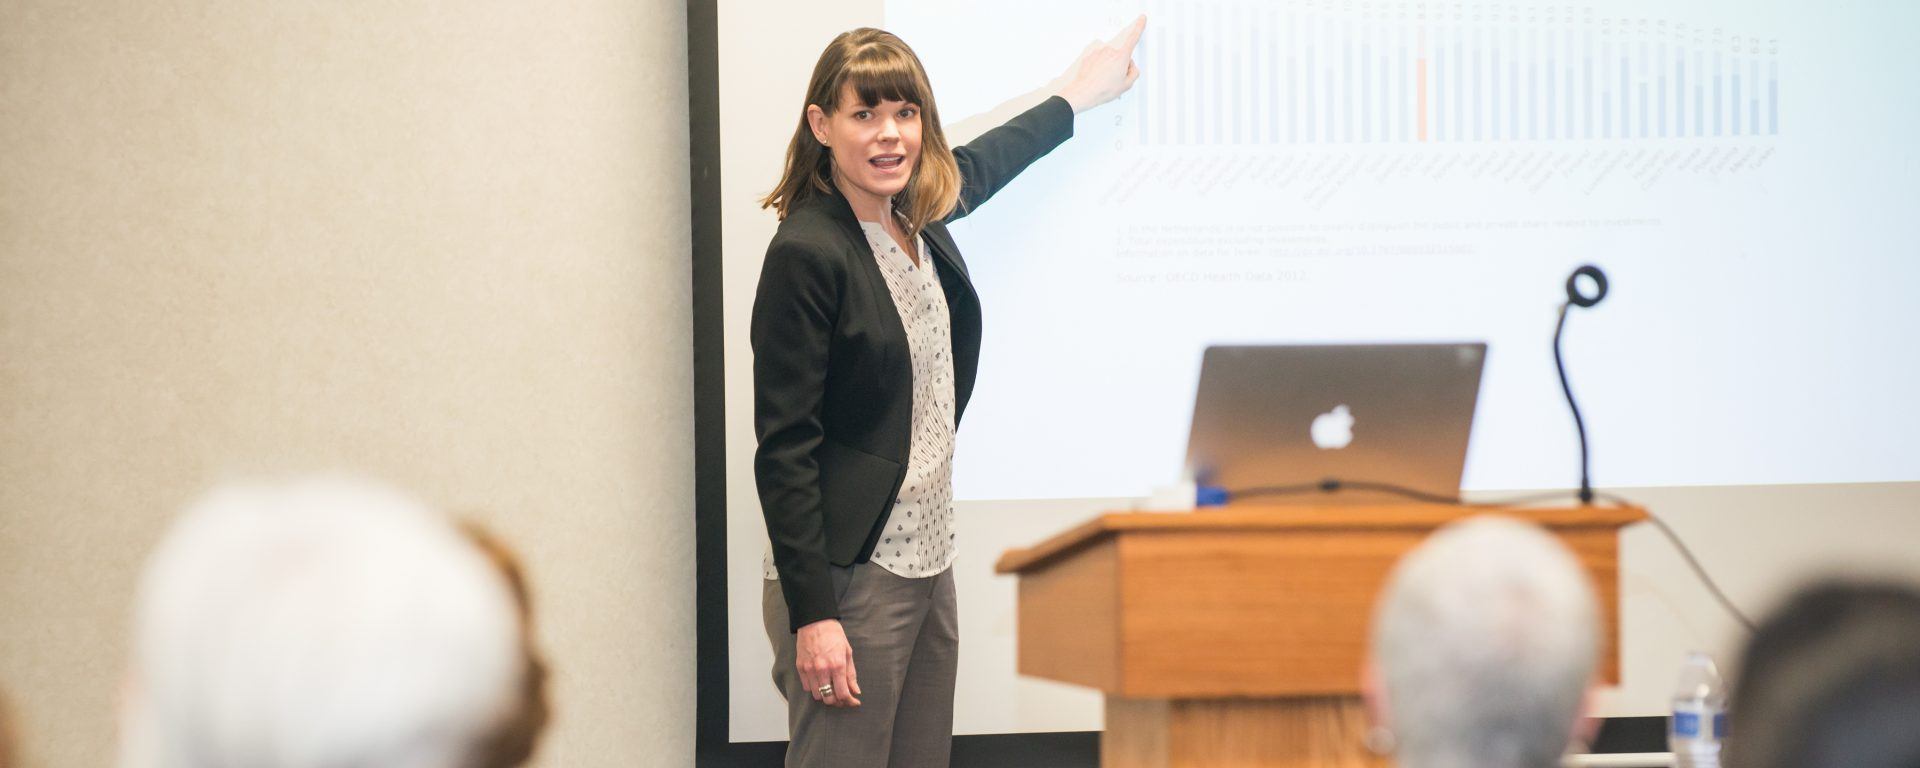 Christy Chapin, History, publishes article explaining evolution of U.S. healthcare system